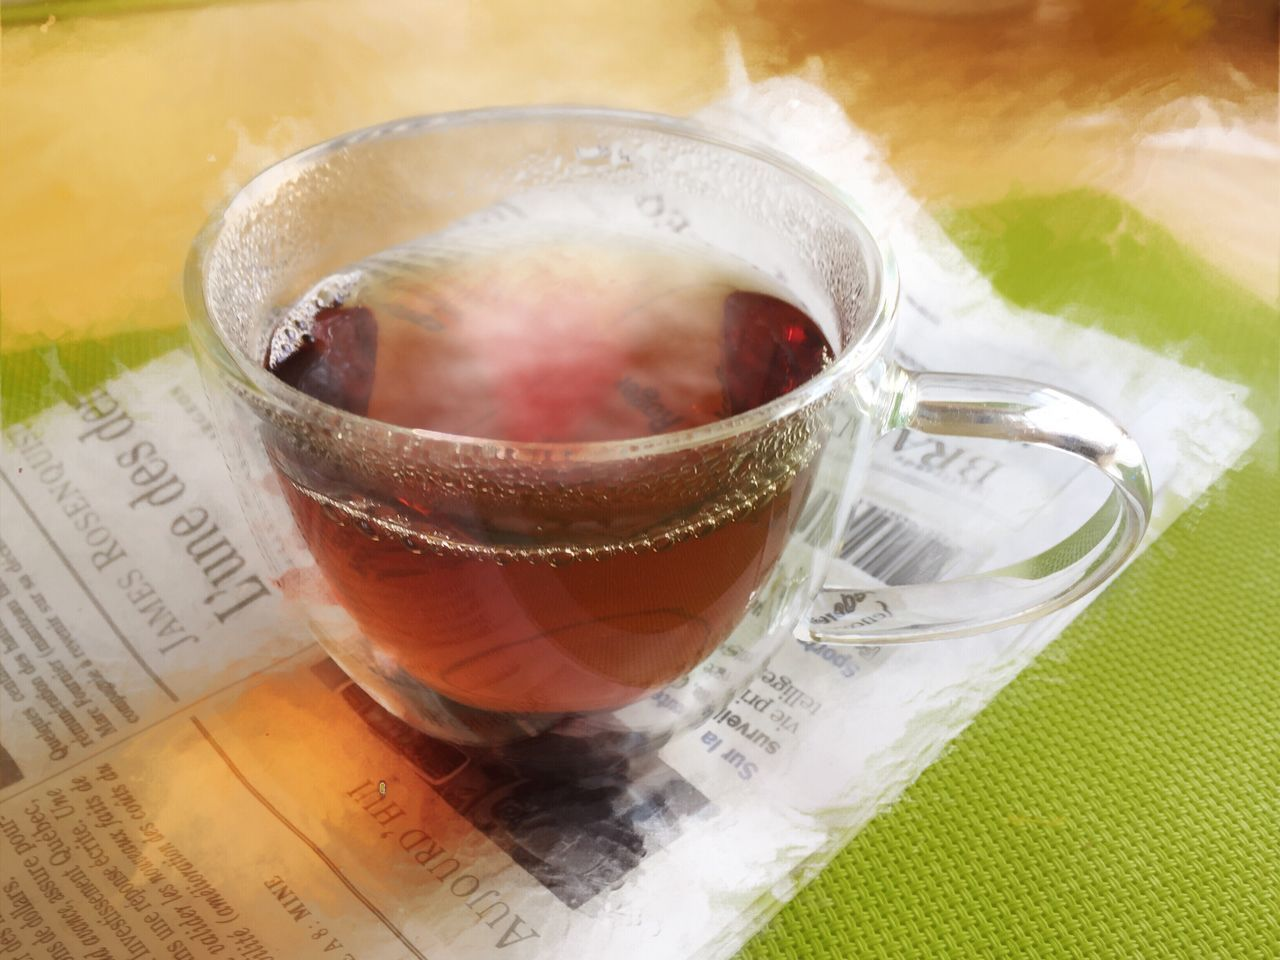 Food And Drink Drink Tea - Hot Drink Close-up Drinking Glass Table Tea Cup No People Newspaper Hot Tea And Newspaper Have A Cup Of Tea Cosy Afternoon Relaxing Moments Morning Newspaper Breakfast Tea See Through Hot Beverage Nice Moments